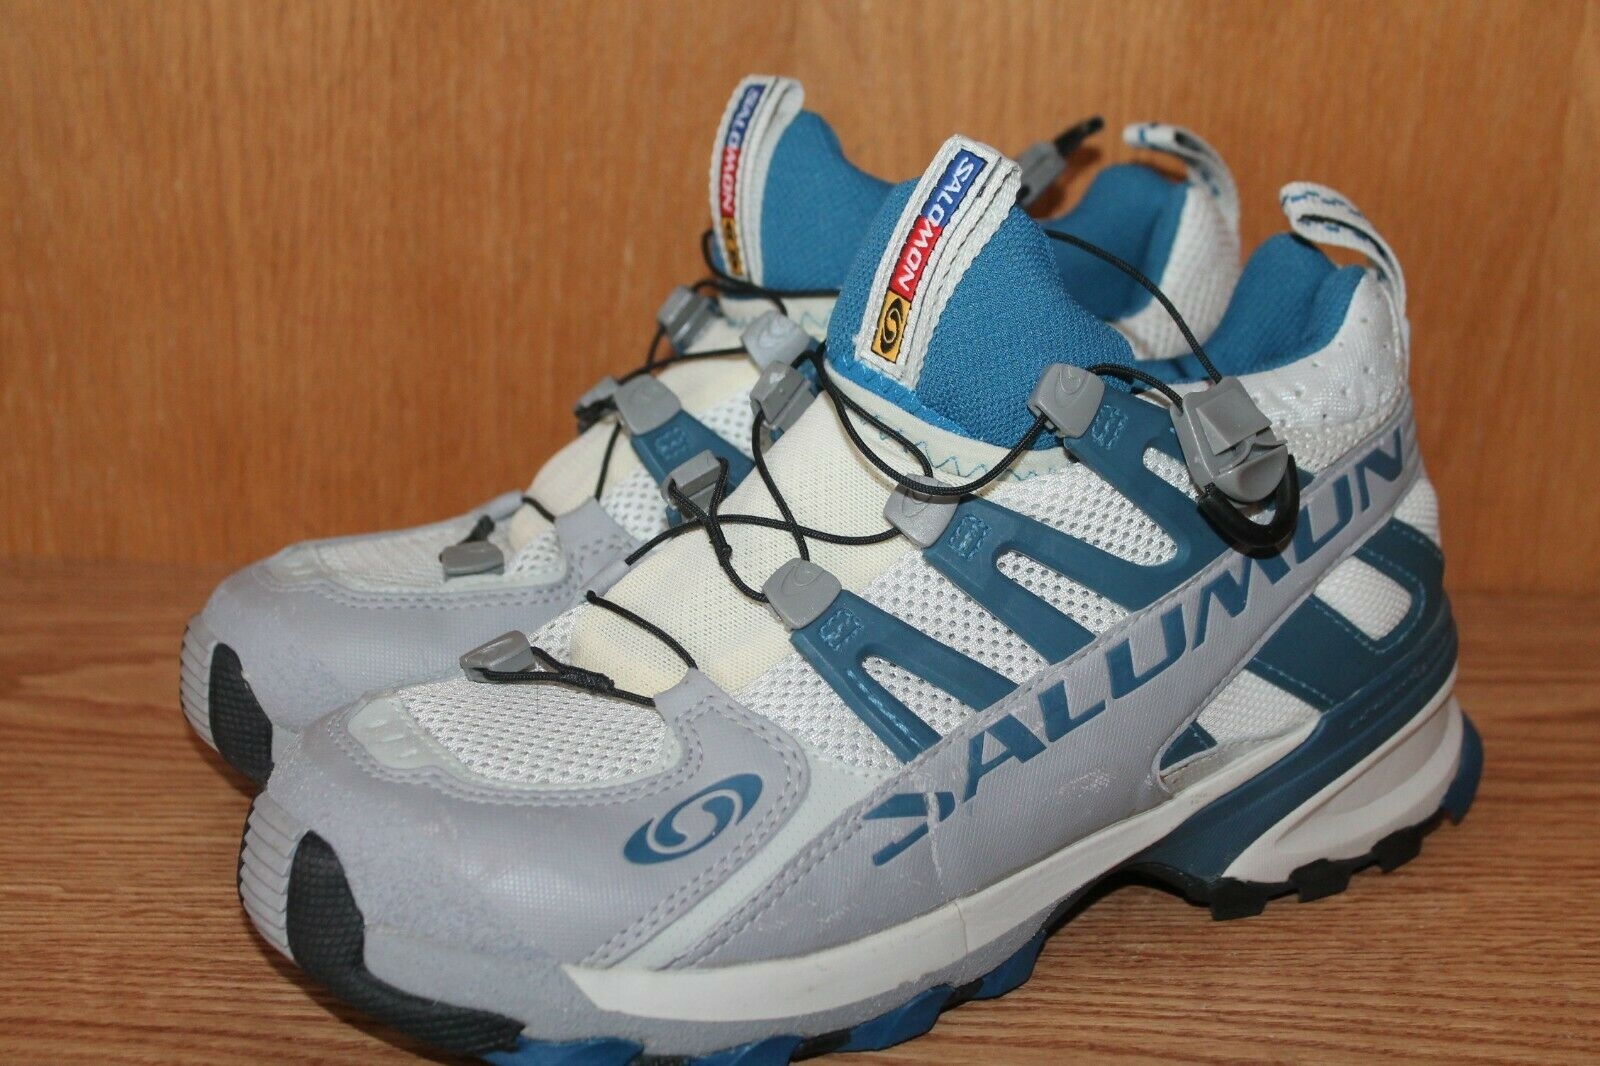 BARELY USED    BARELY USED    SALOMON Men's HIKING SHOES Size 8.5 Med  3